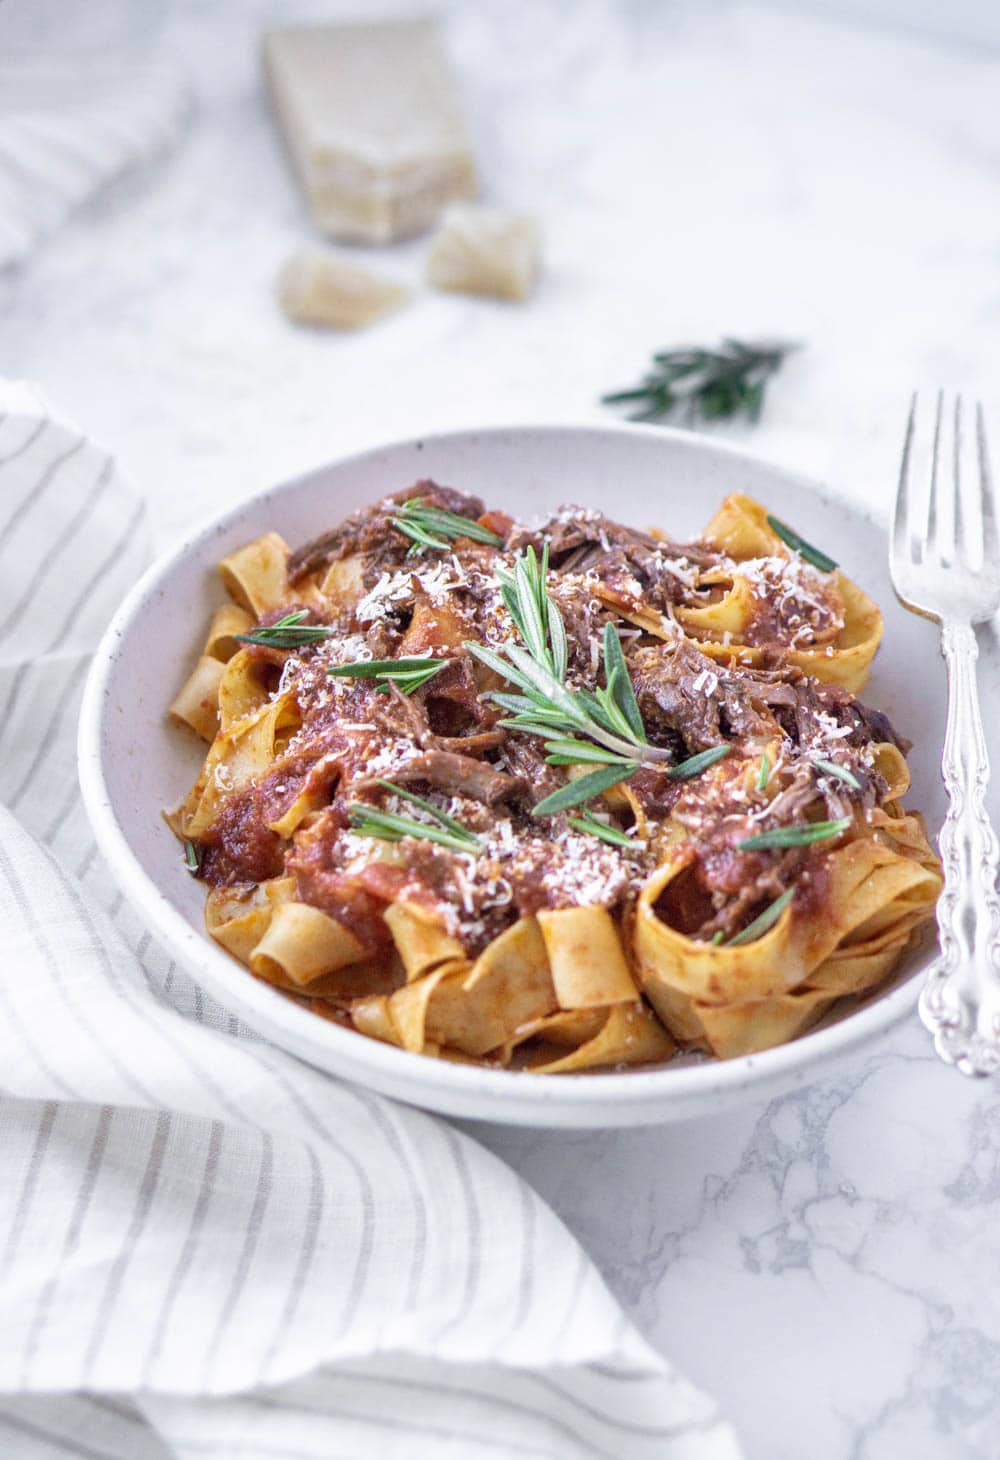 beef short rib pappardelle in a white plate with parmesan and rosemary in the background